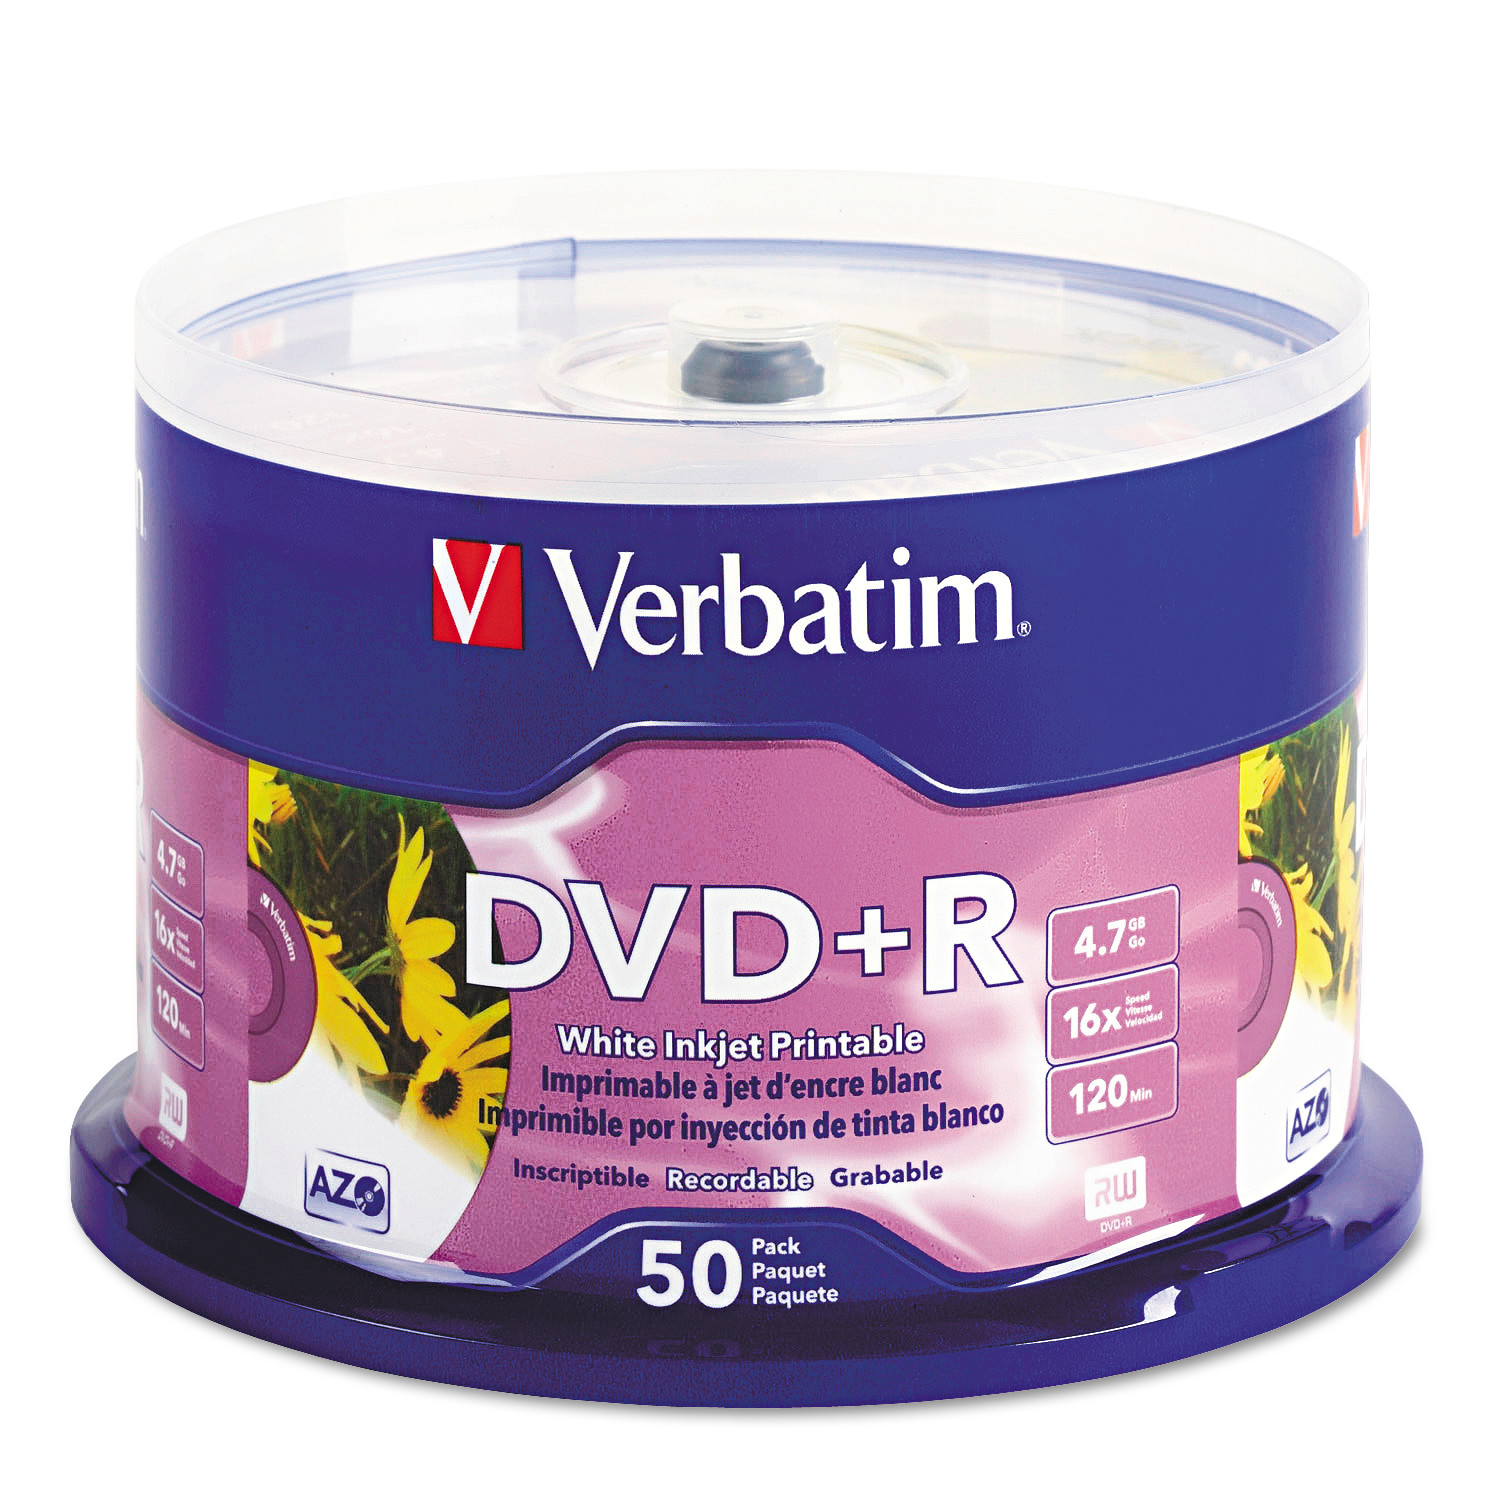 photo about Printable Dvd called Verbatim Inkjet Printable DVD+R Discs, White, 50/Pack -VER95136